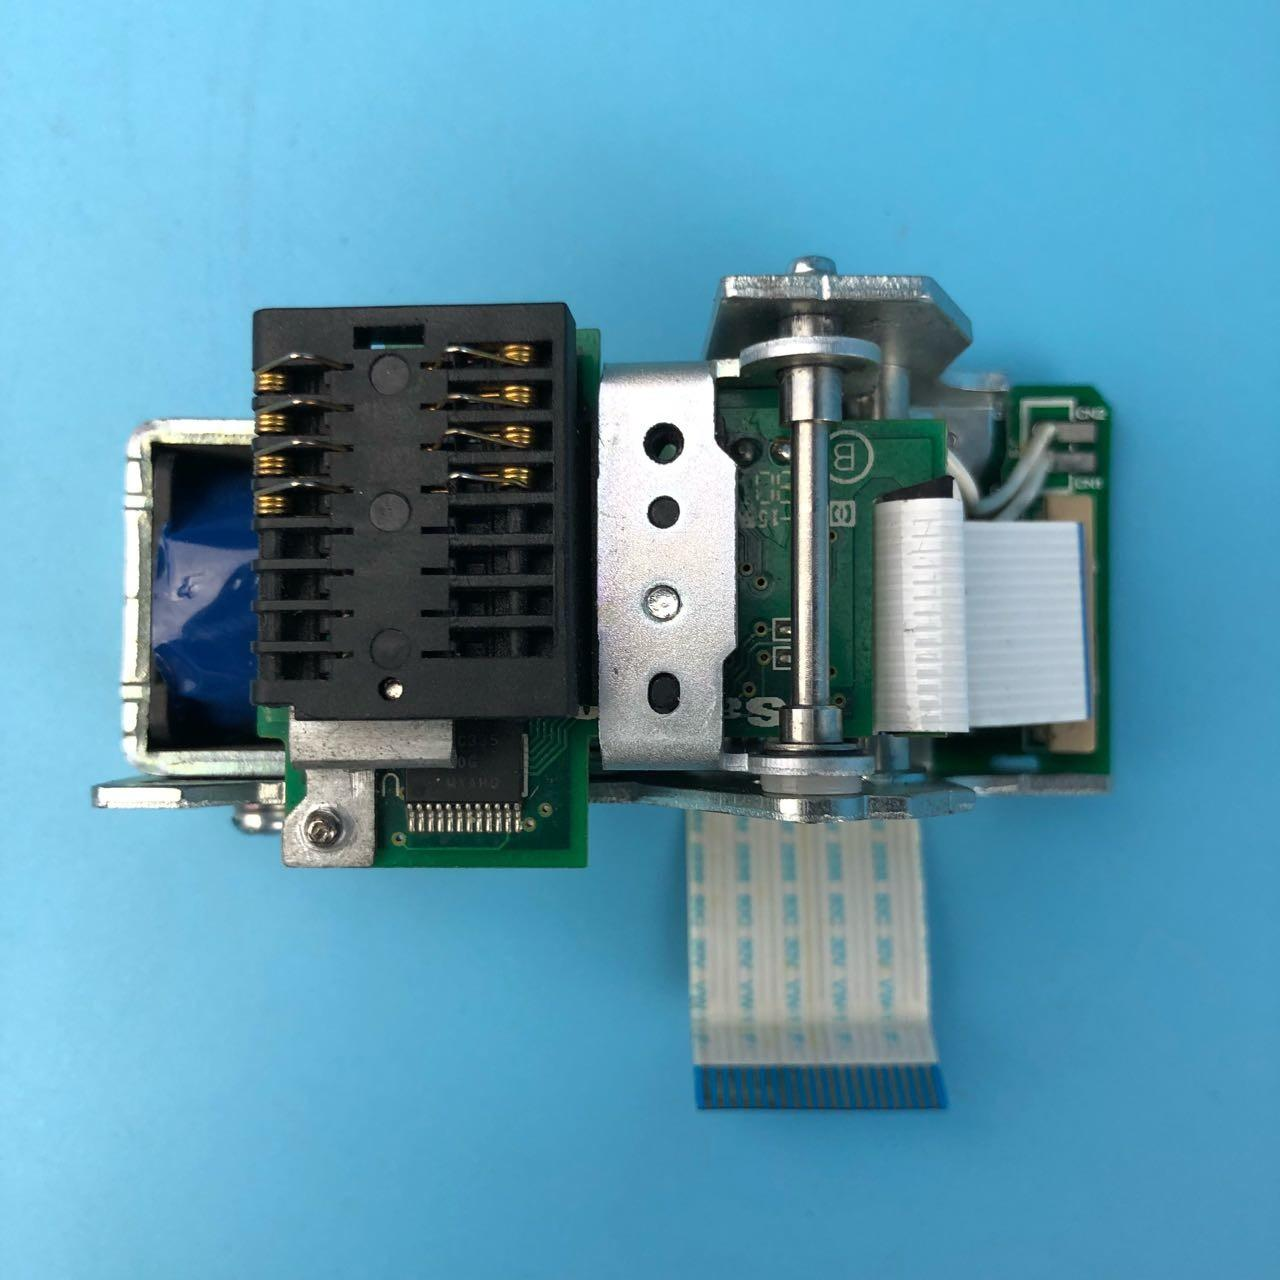 China Lightweight NCR ATM Parts Card Reader IMCRW Contact Set IC Moudule 0090018643 on sale